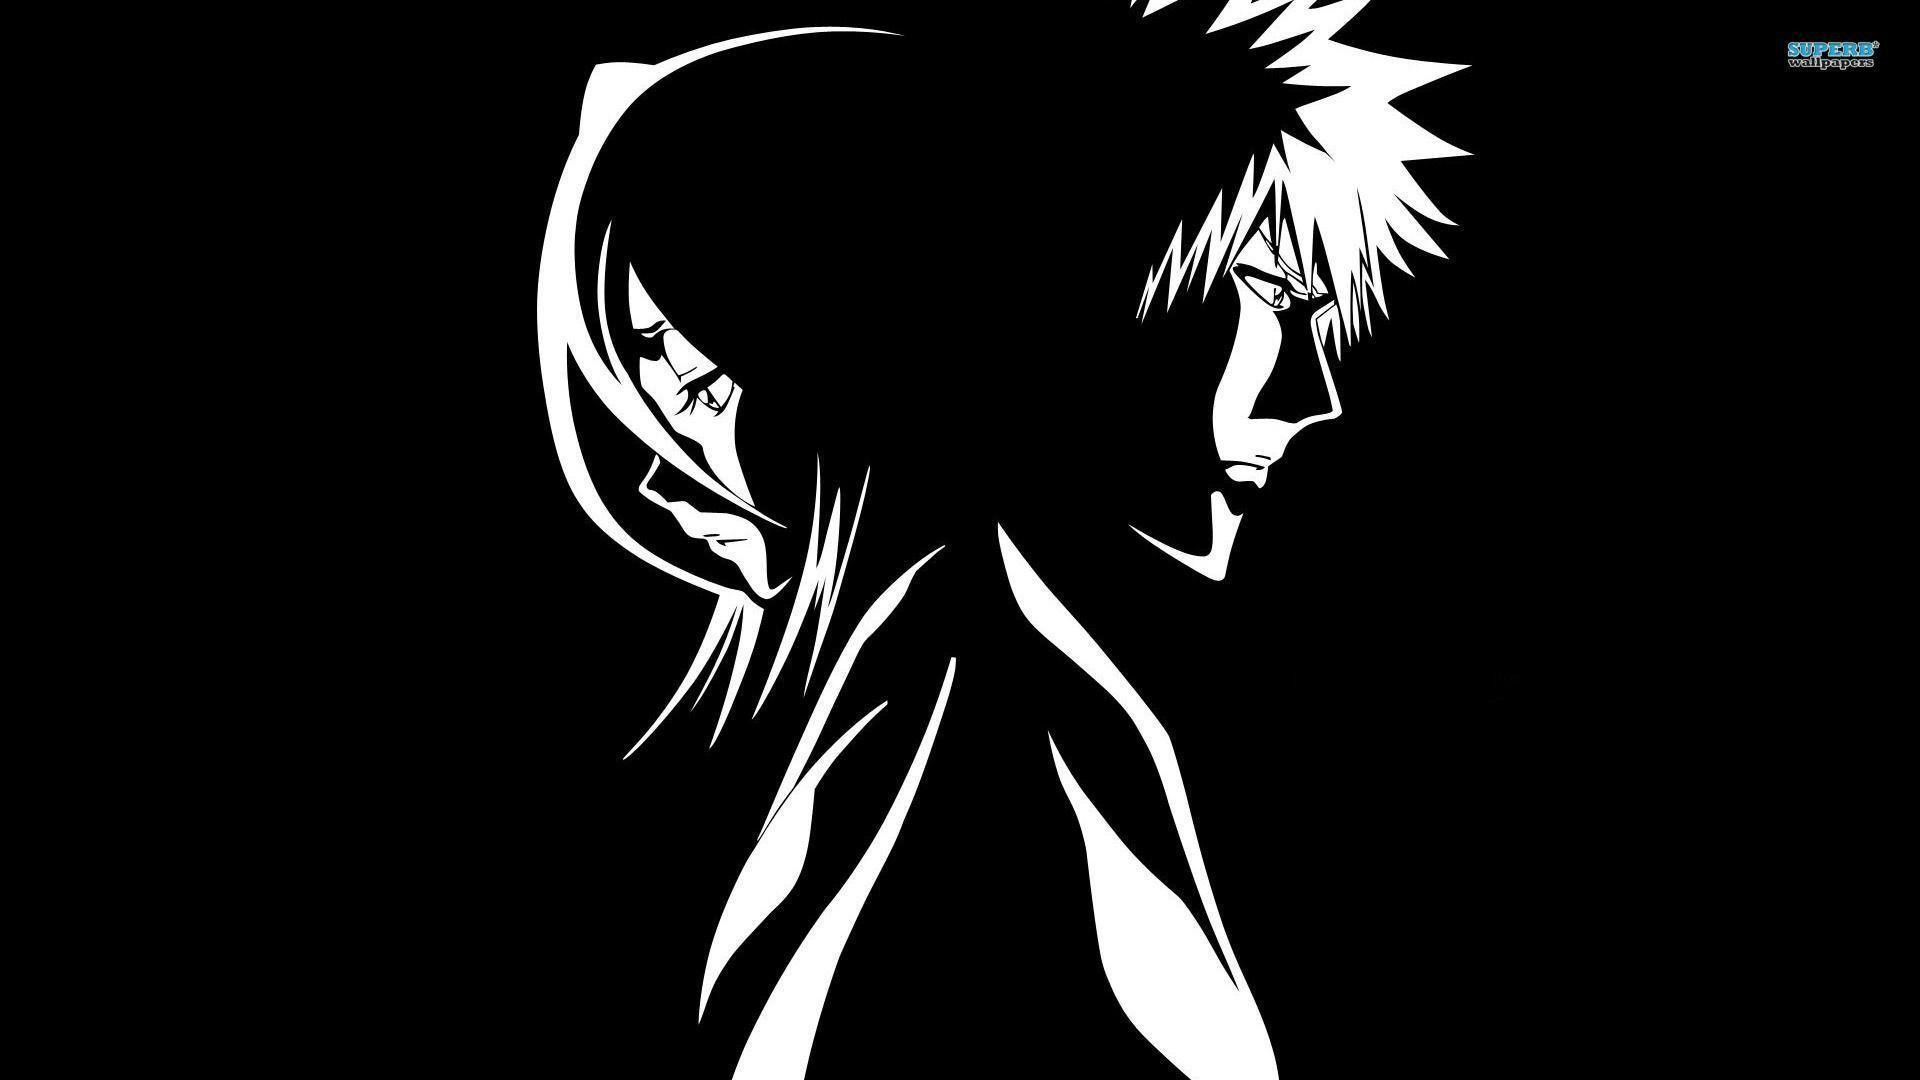 Bleach Ichigo and Rukia Wallpaper (63+ images)